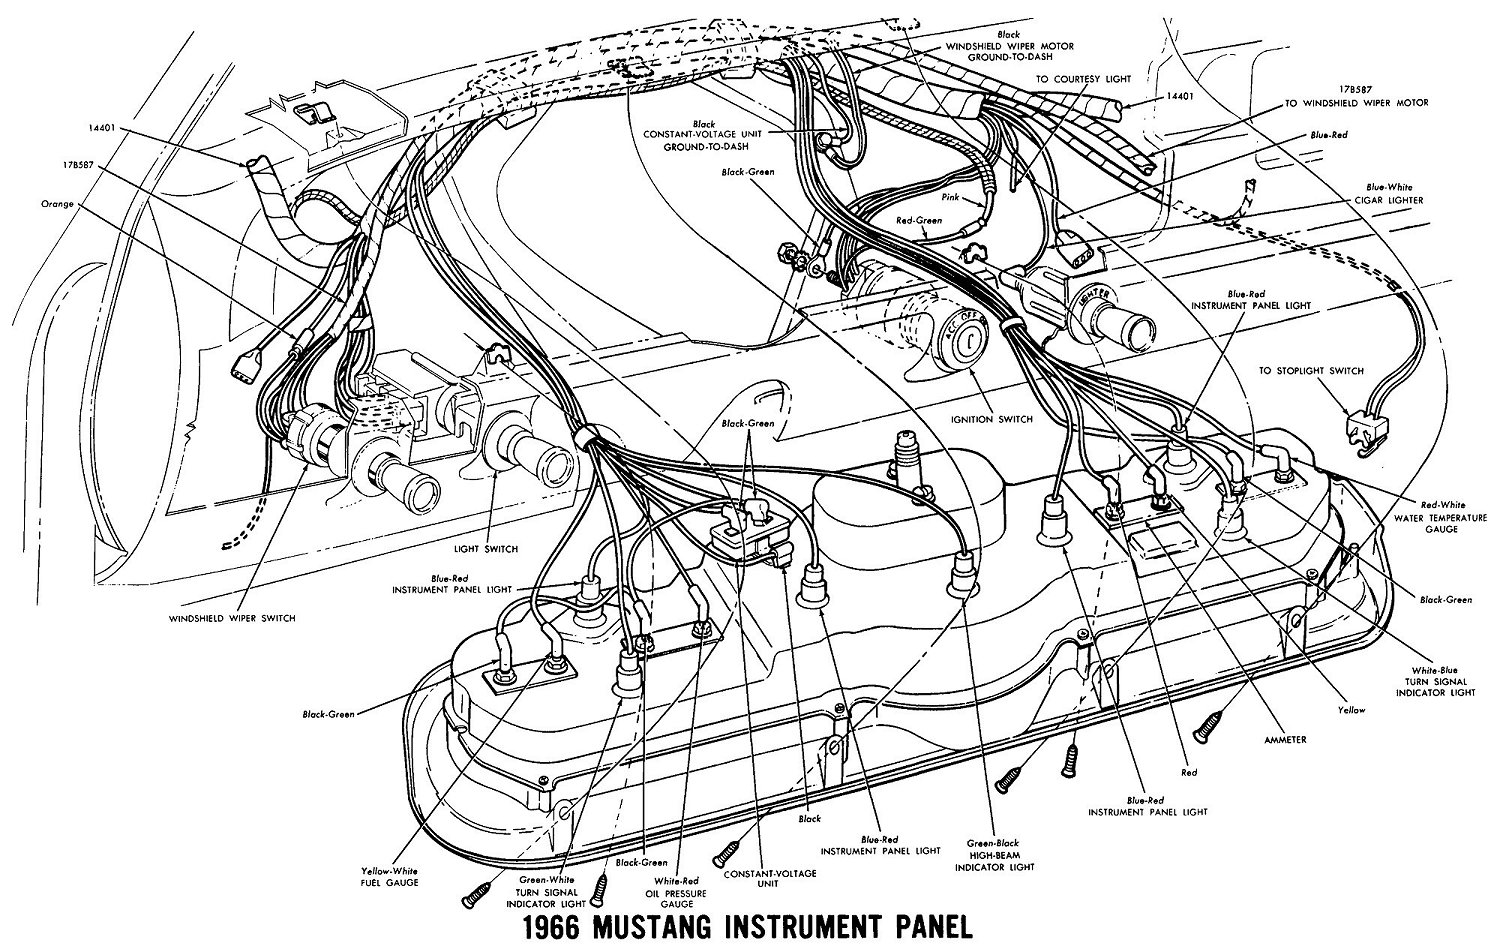 1956 Ford F100 Heater Wiring Diagram together with 57 Chevy Starter Wiring Diagram additionally Ford Focus Electric Window Fuse Photos likewise 66 Mustang Steering Parts as well 1970 Corvette Horn Relay Wiring Diagrams. on chevelle wiring schematics